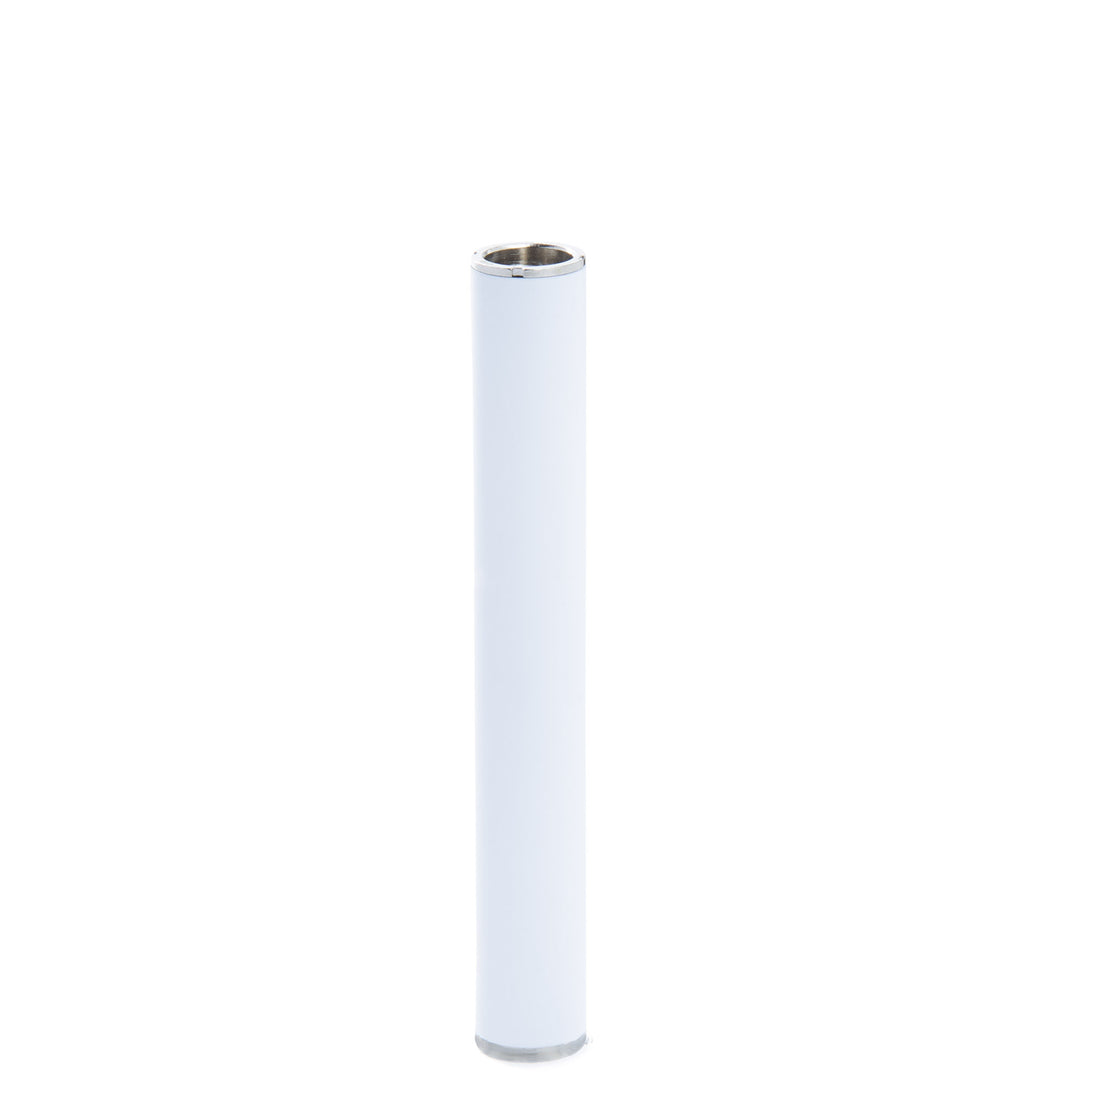 CCell M3 Cartridge Vape Battery - 420 Science - The most trusted online smoke shop.